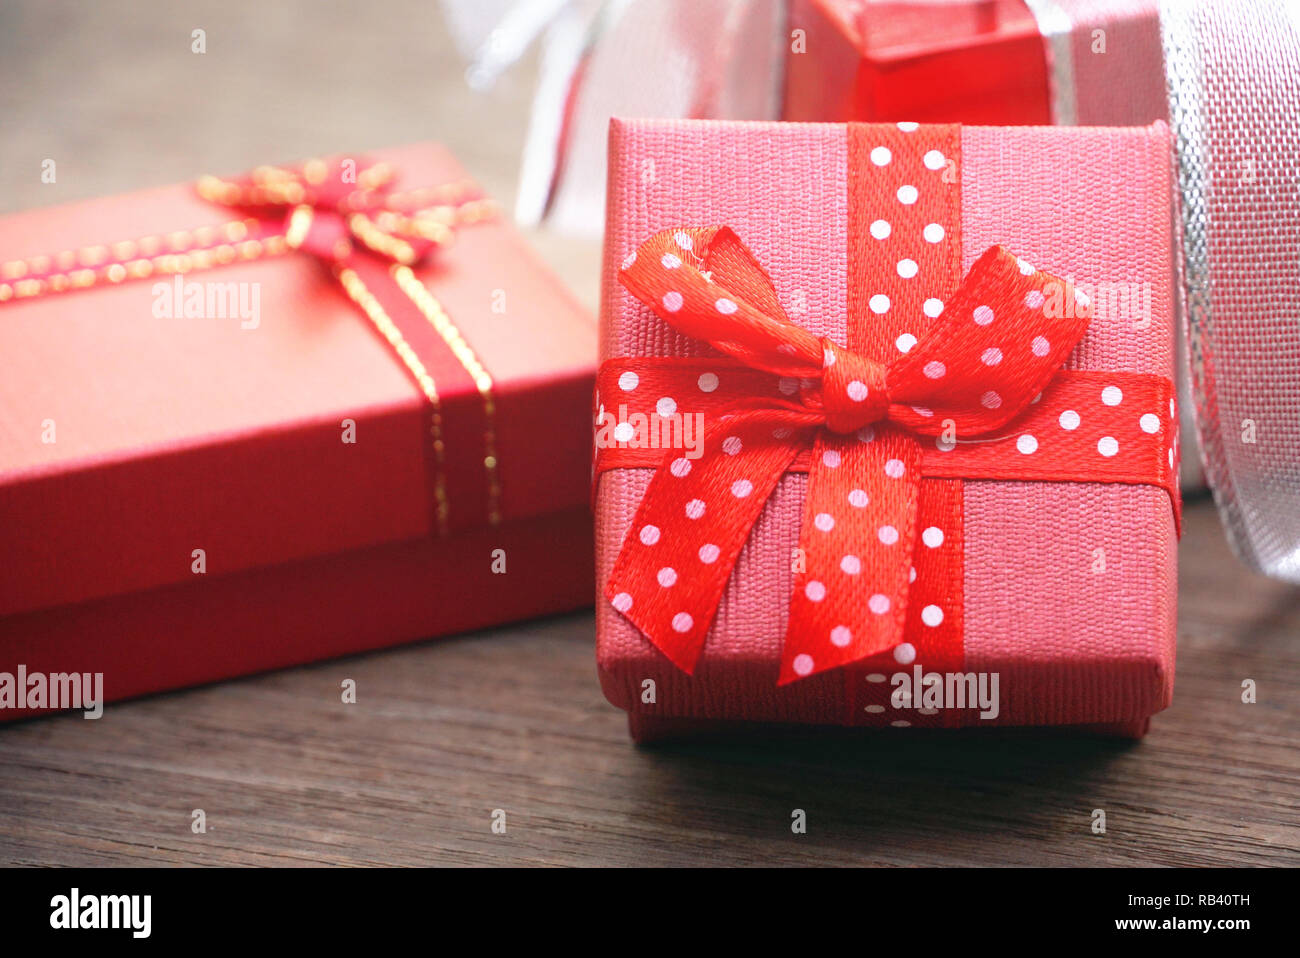 Red gift box on wood table - Stock Image